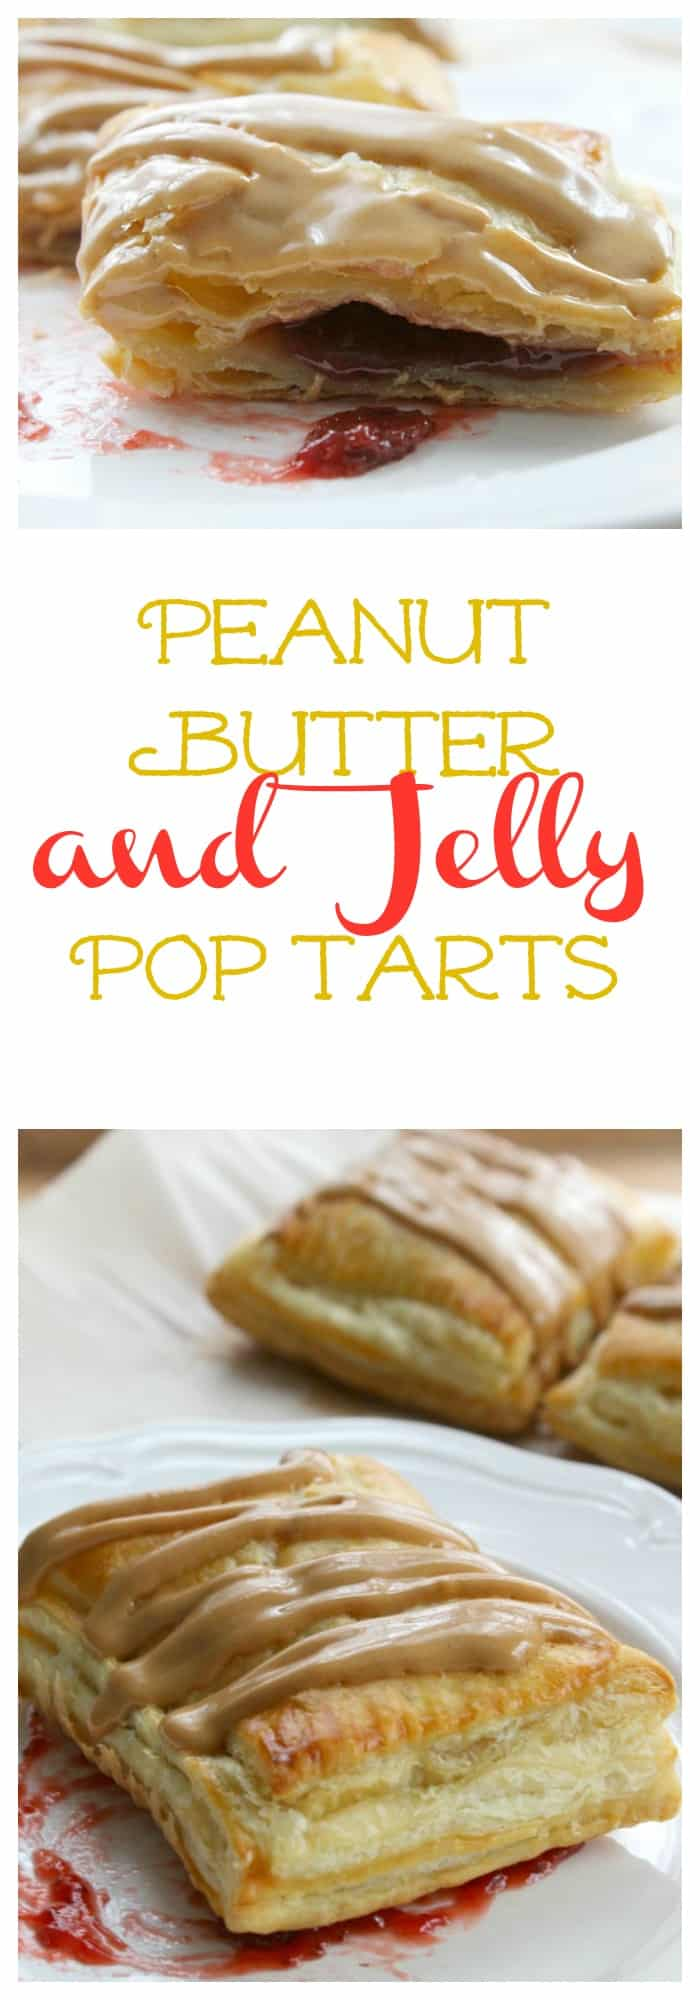 Peanut Butter and Jelly Pop Tarts | The Bitter Side of Sweet